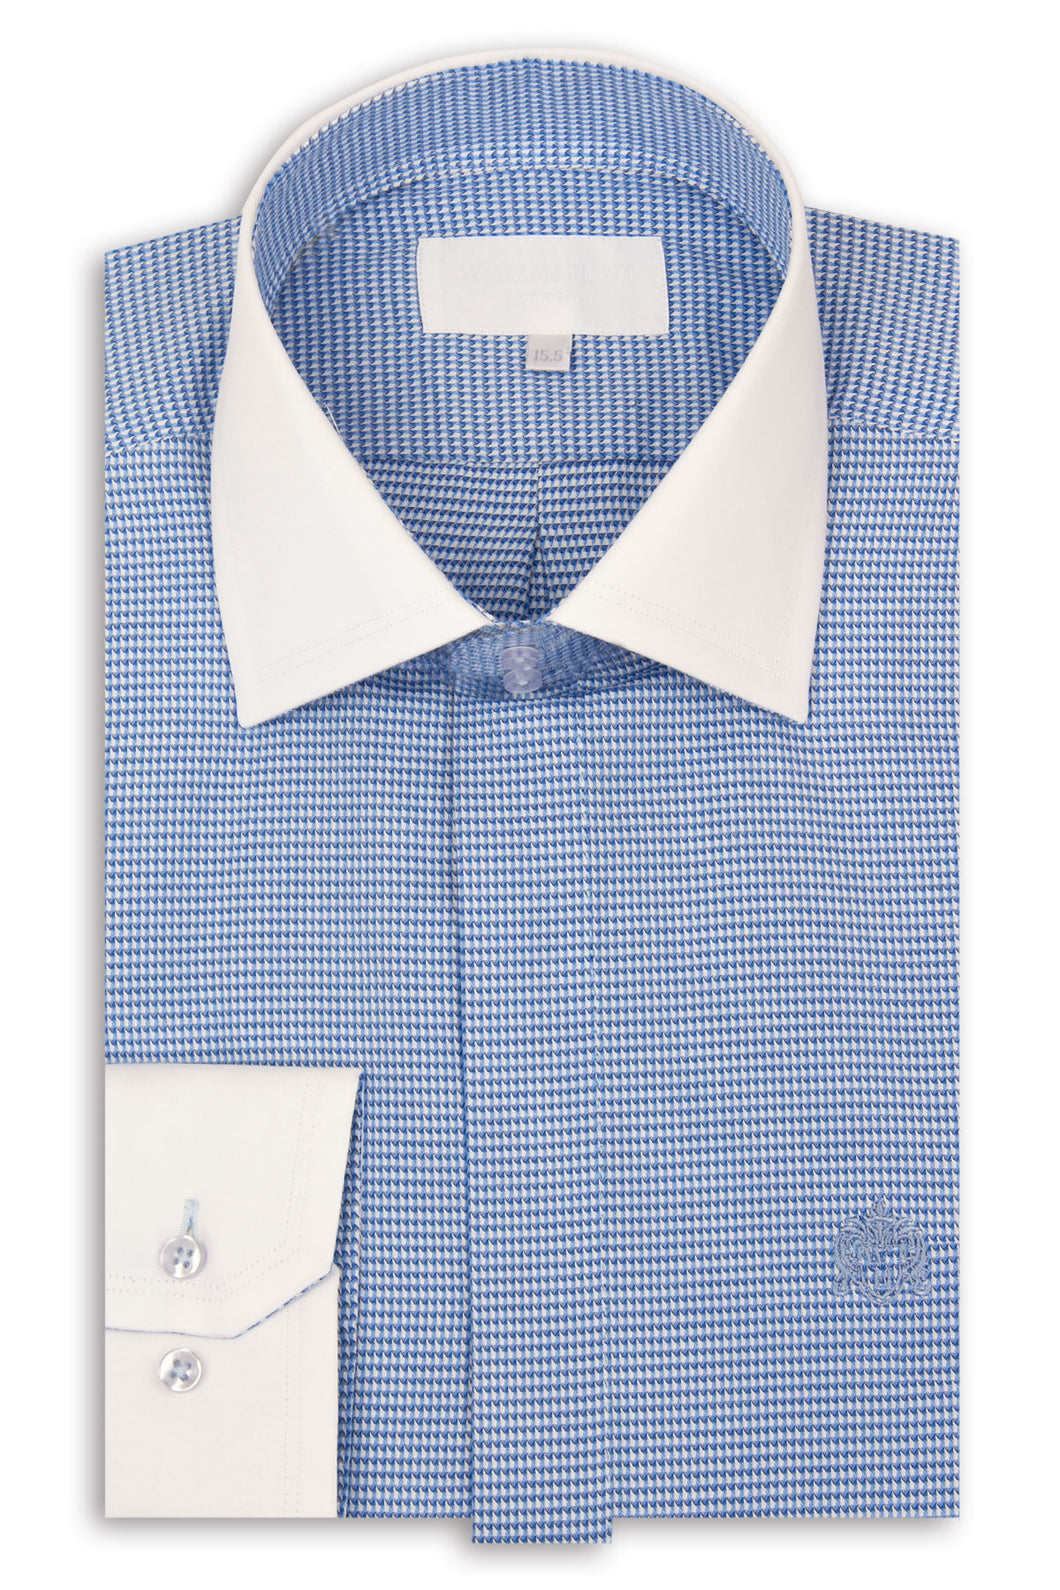 Blue Cutaway Collar Shirt with White Pattern